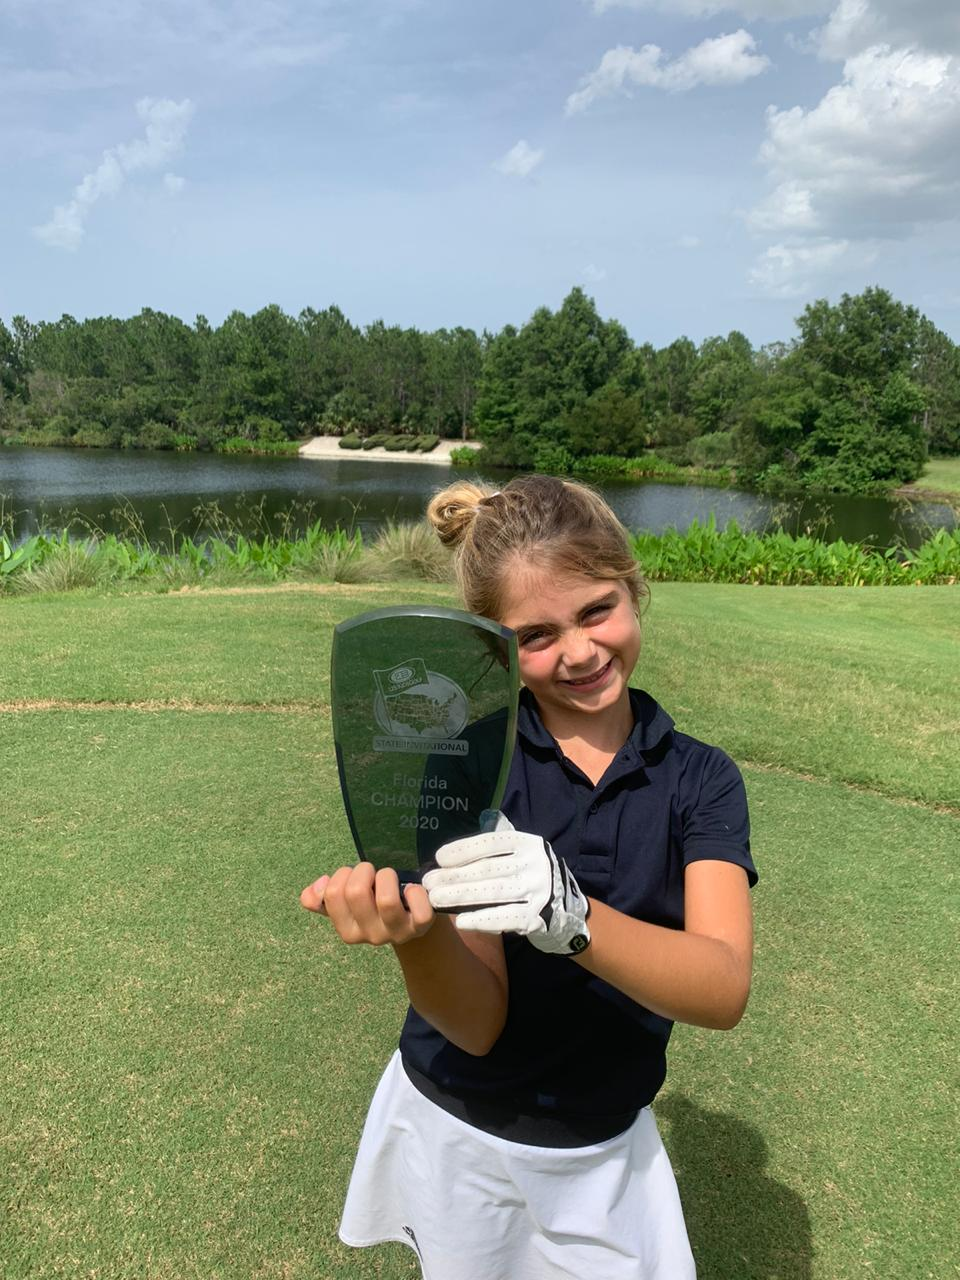 Golfista de 6 anos, Bella Simões é campeã do Florida State Invitation